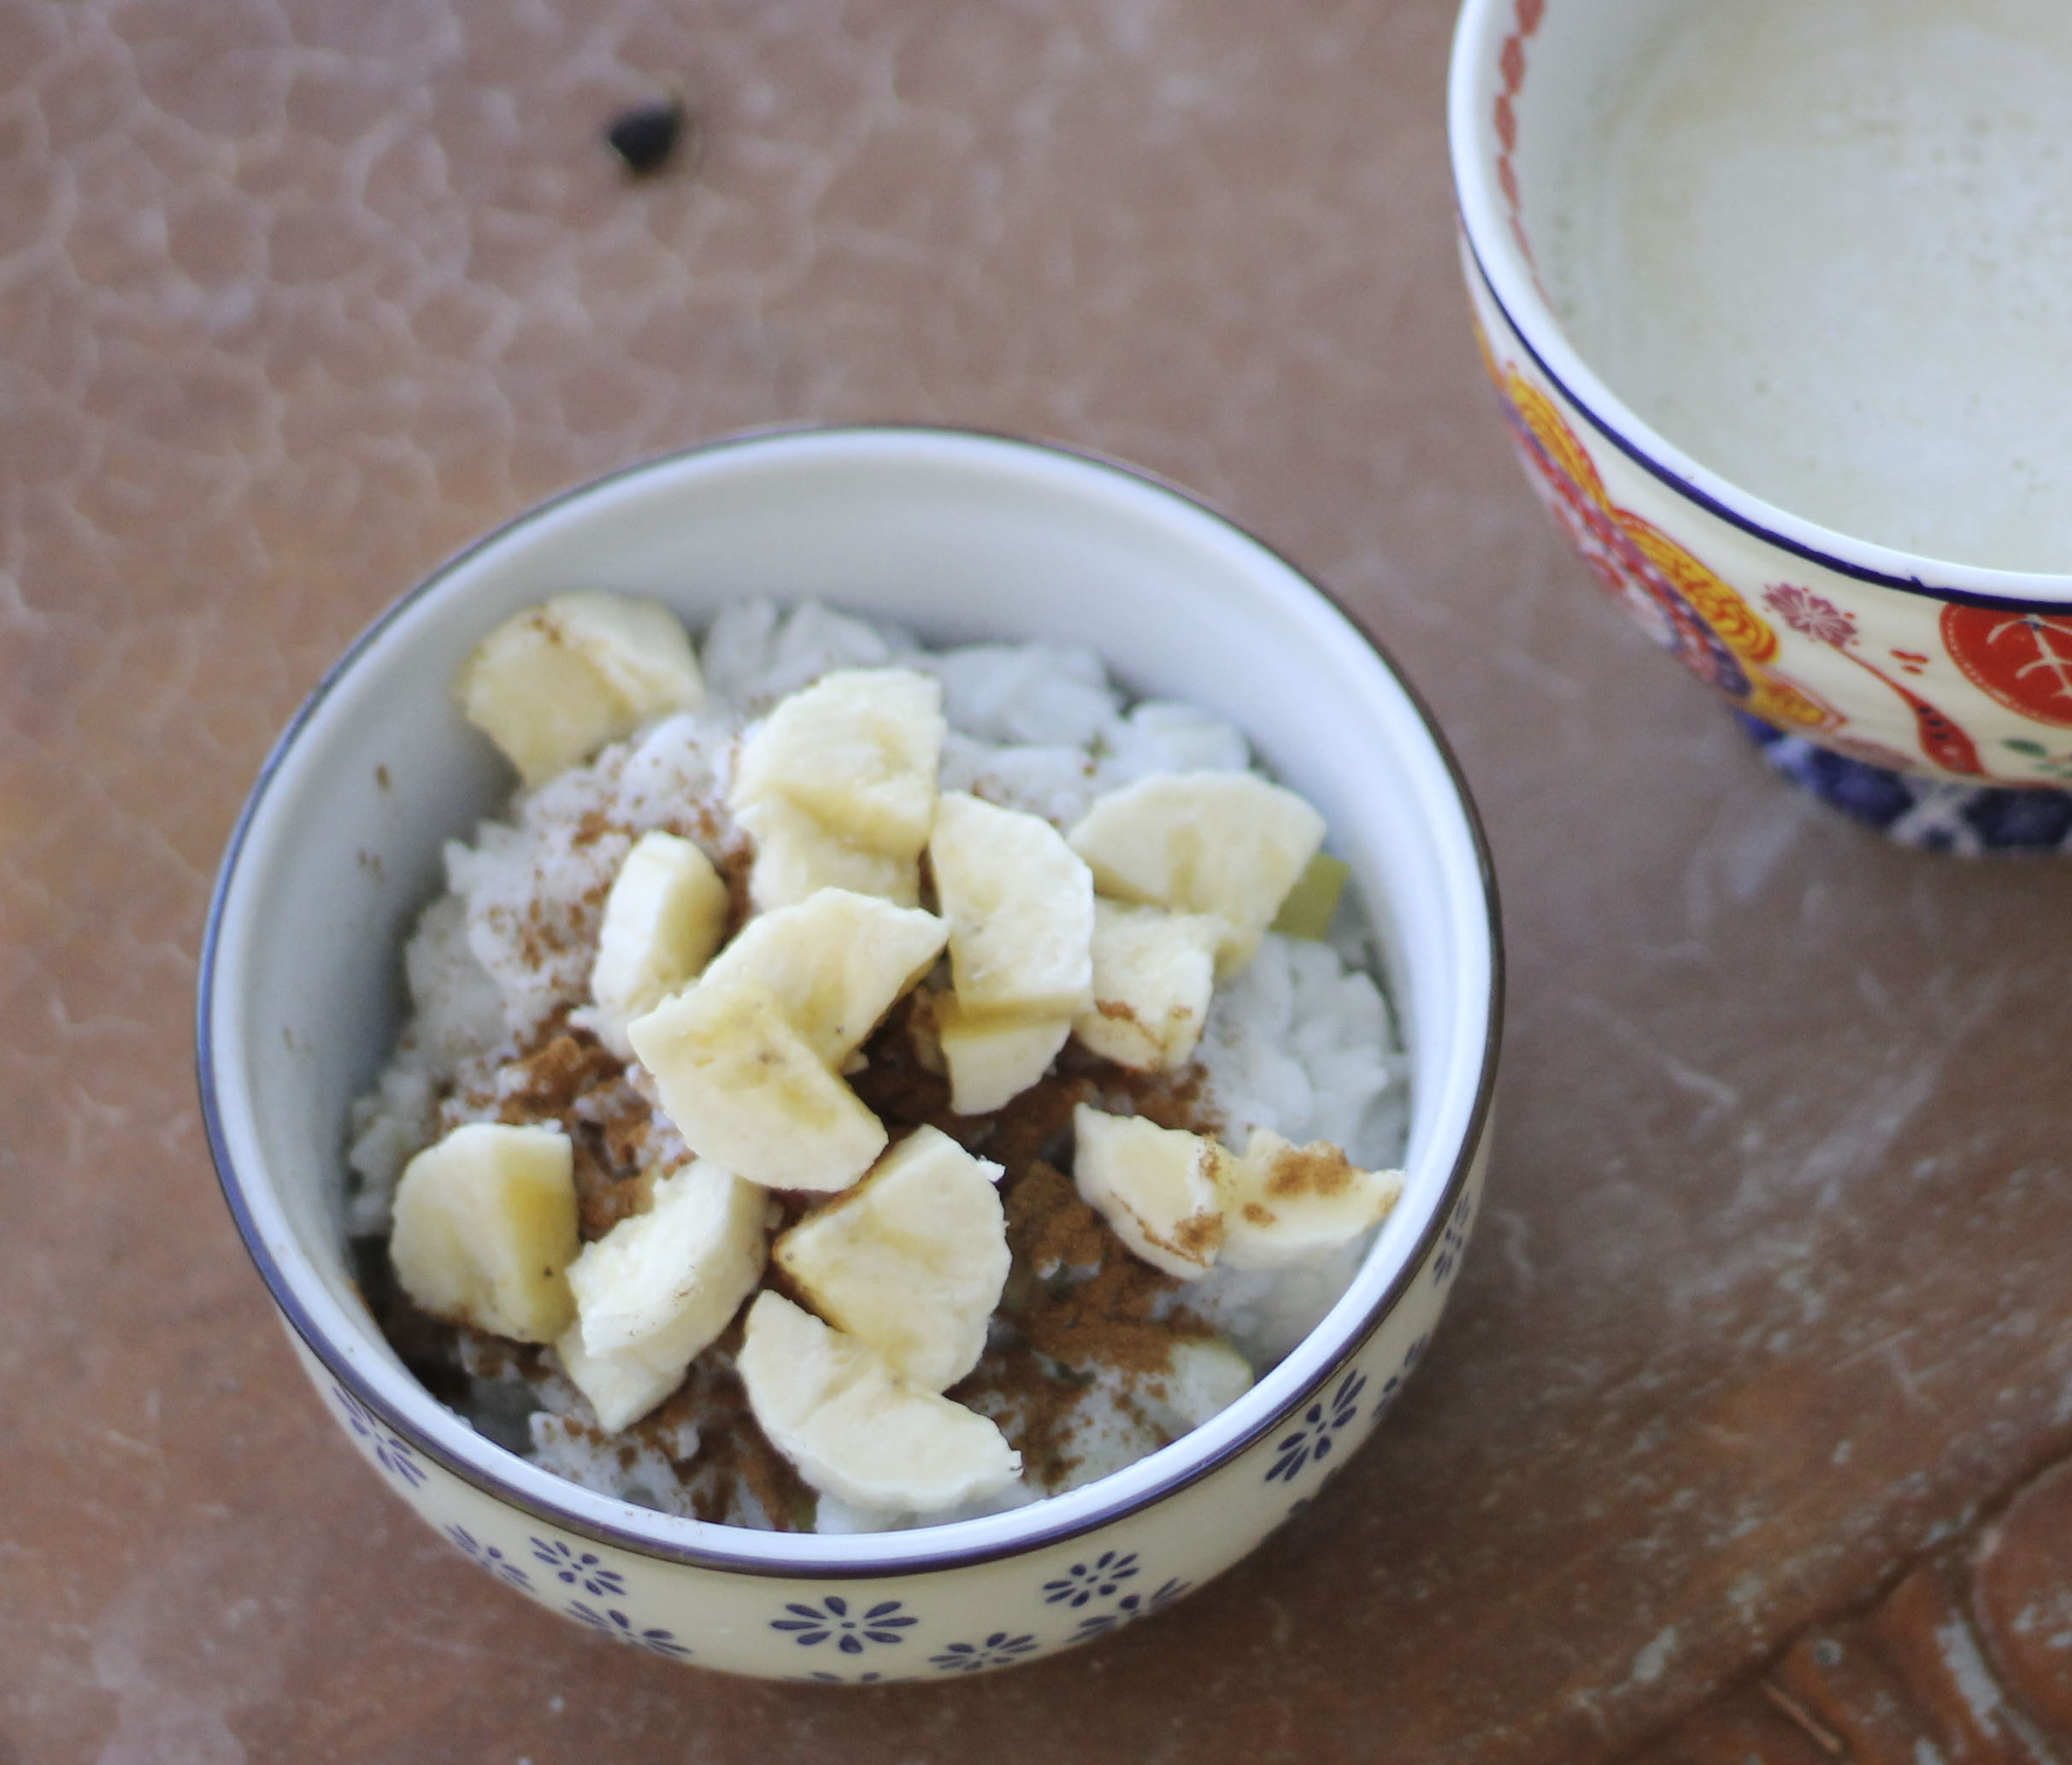 Breakfast rice porridge 2354.jpg